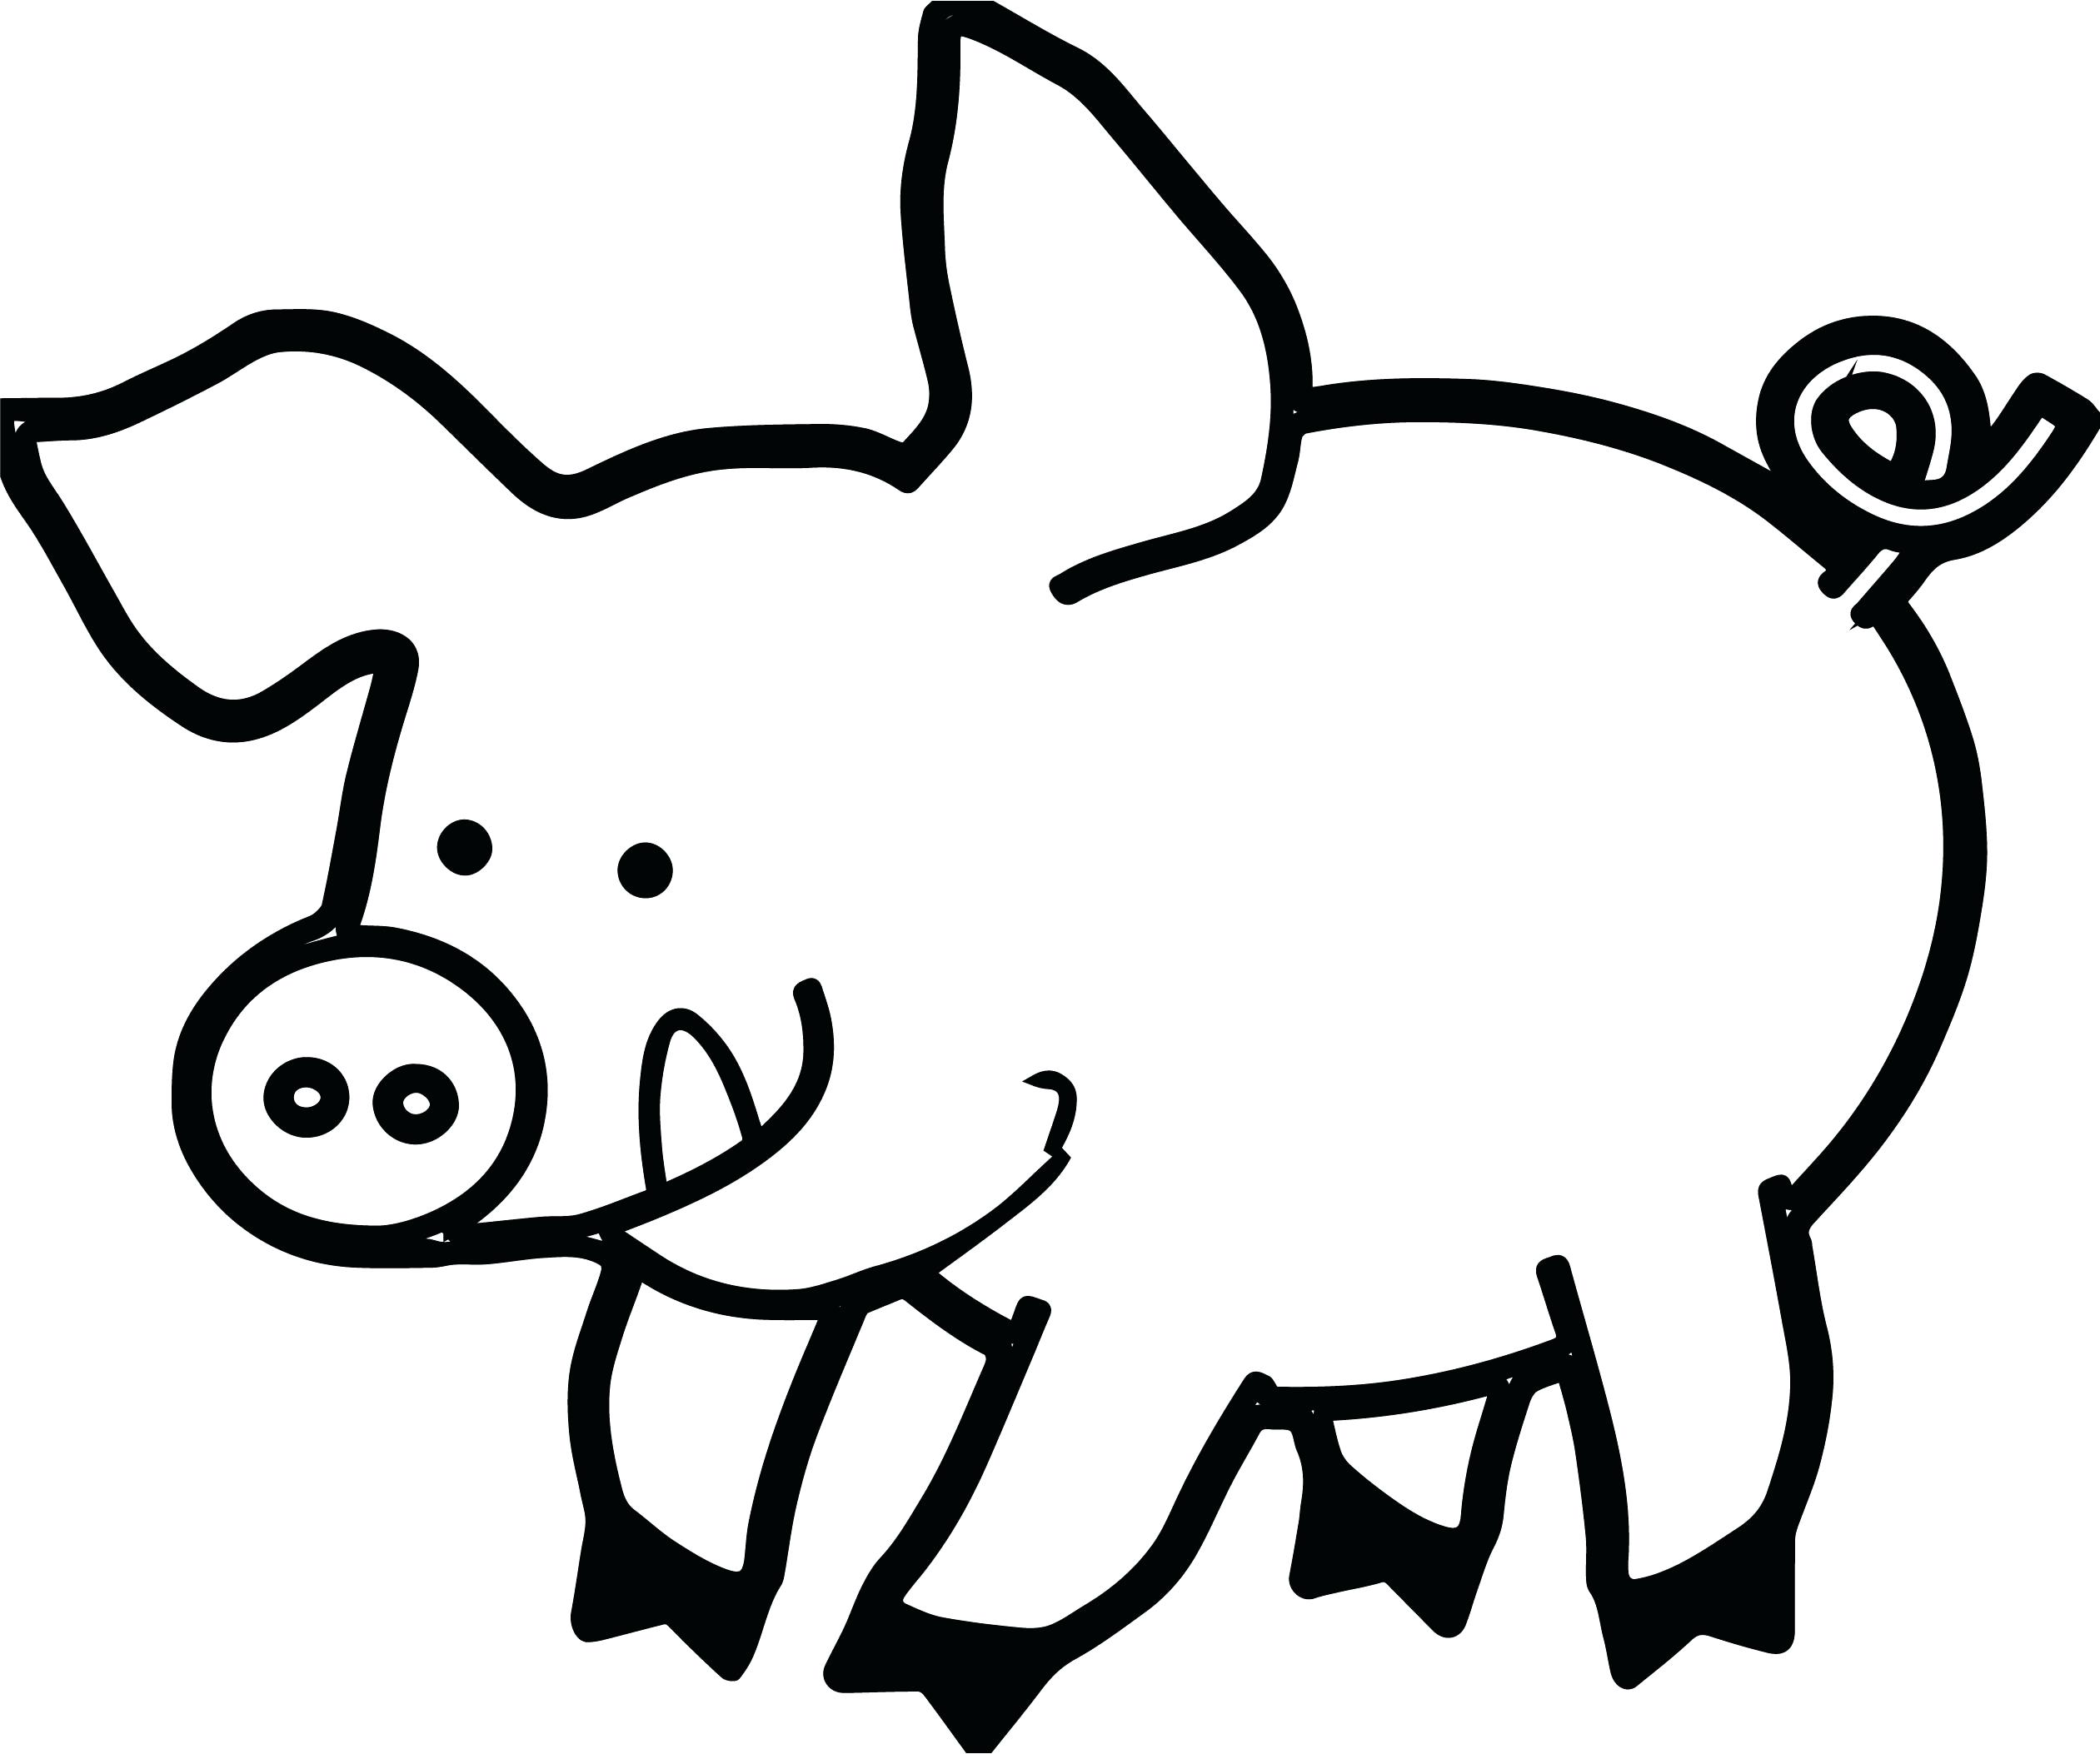 Pig clip art black and white. Face drawing at getdrawings